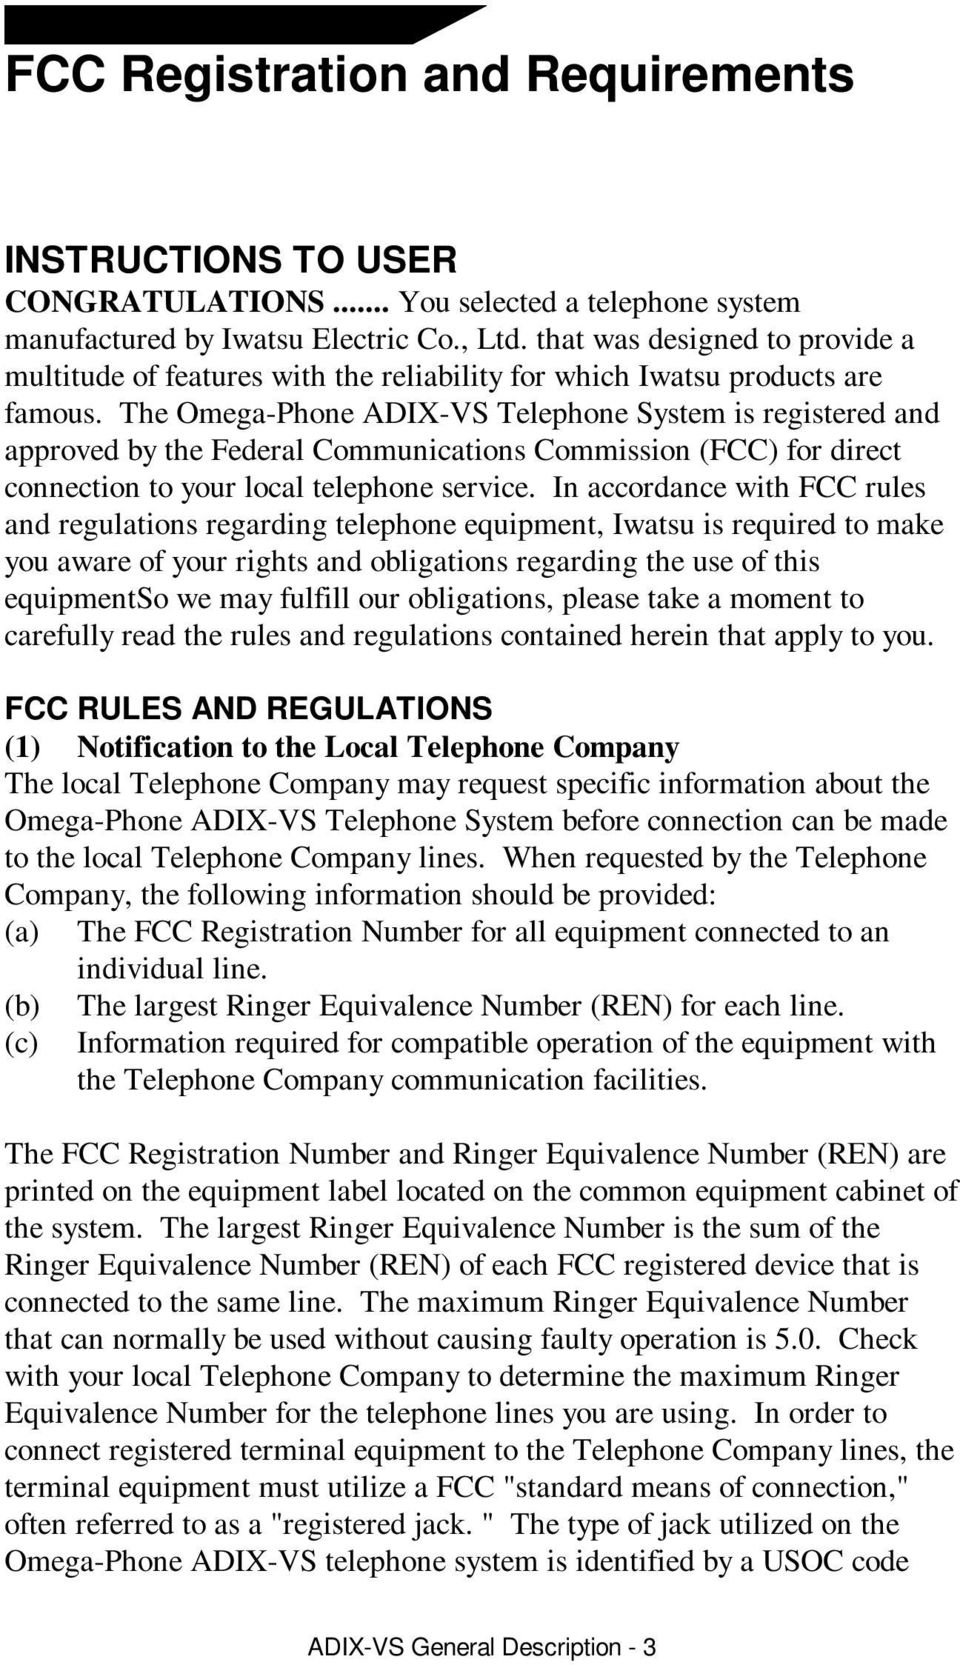 The Omega-Phone ADIX-VS Telephone System is registered and approved by the Federal Communications Commission (FCC) for direct connection to your local telephone service.